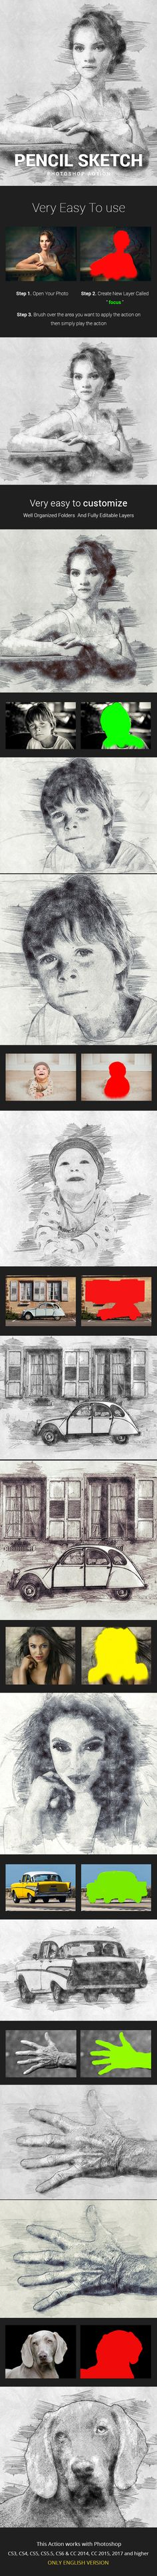 Pencil Sketch Photoshop Action Photo Effects - Photo Effects Actions